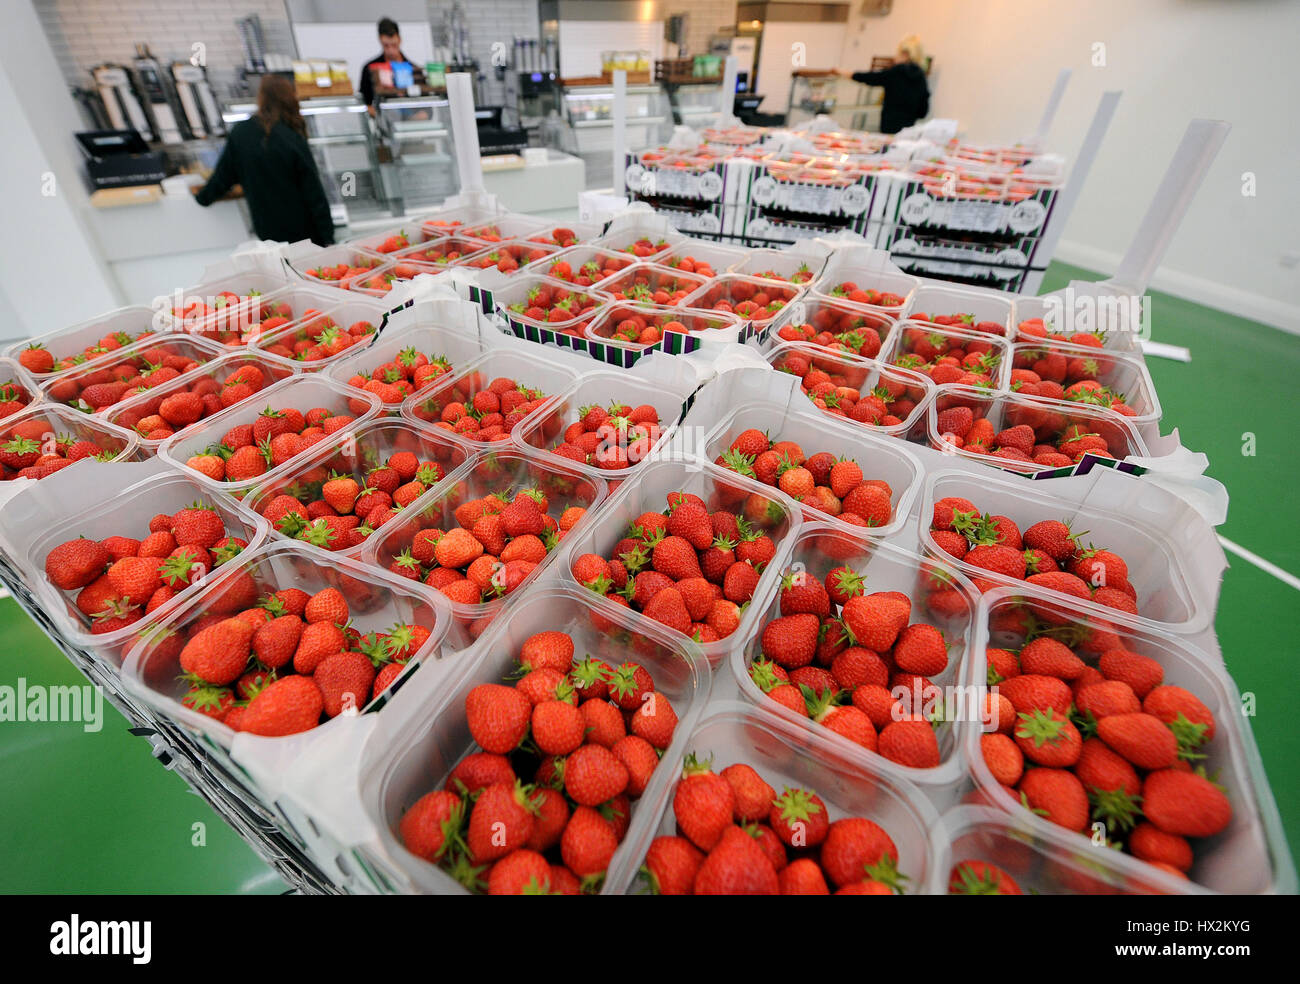 STRAWBERRIES GETTING DELIVERED THE WIMBLEDON THE WIMBLEDON CHAMPIONSHIPS 20 THE ALL ENGLAND TENNIS CLUB WIMBLEDON - Stock Image